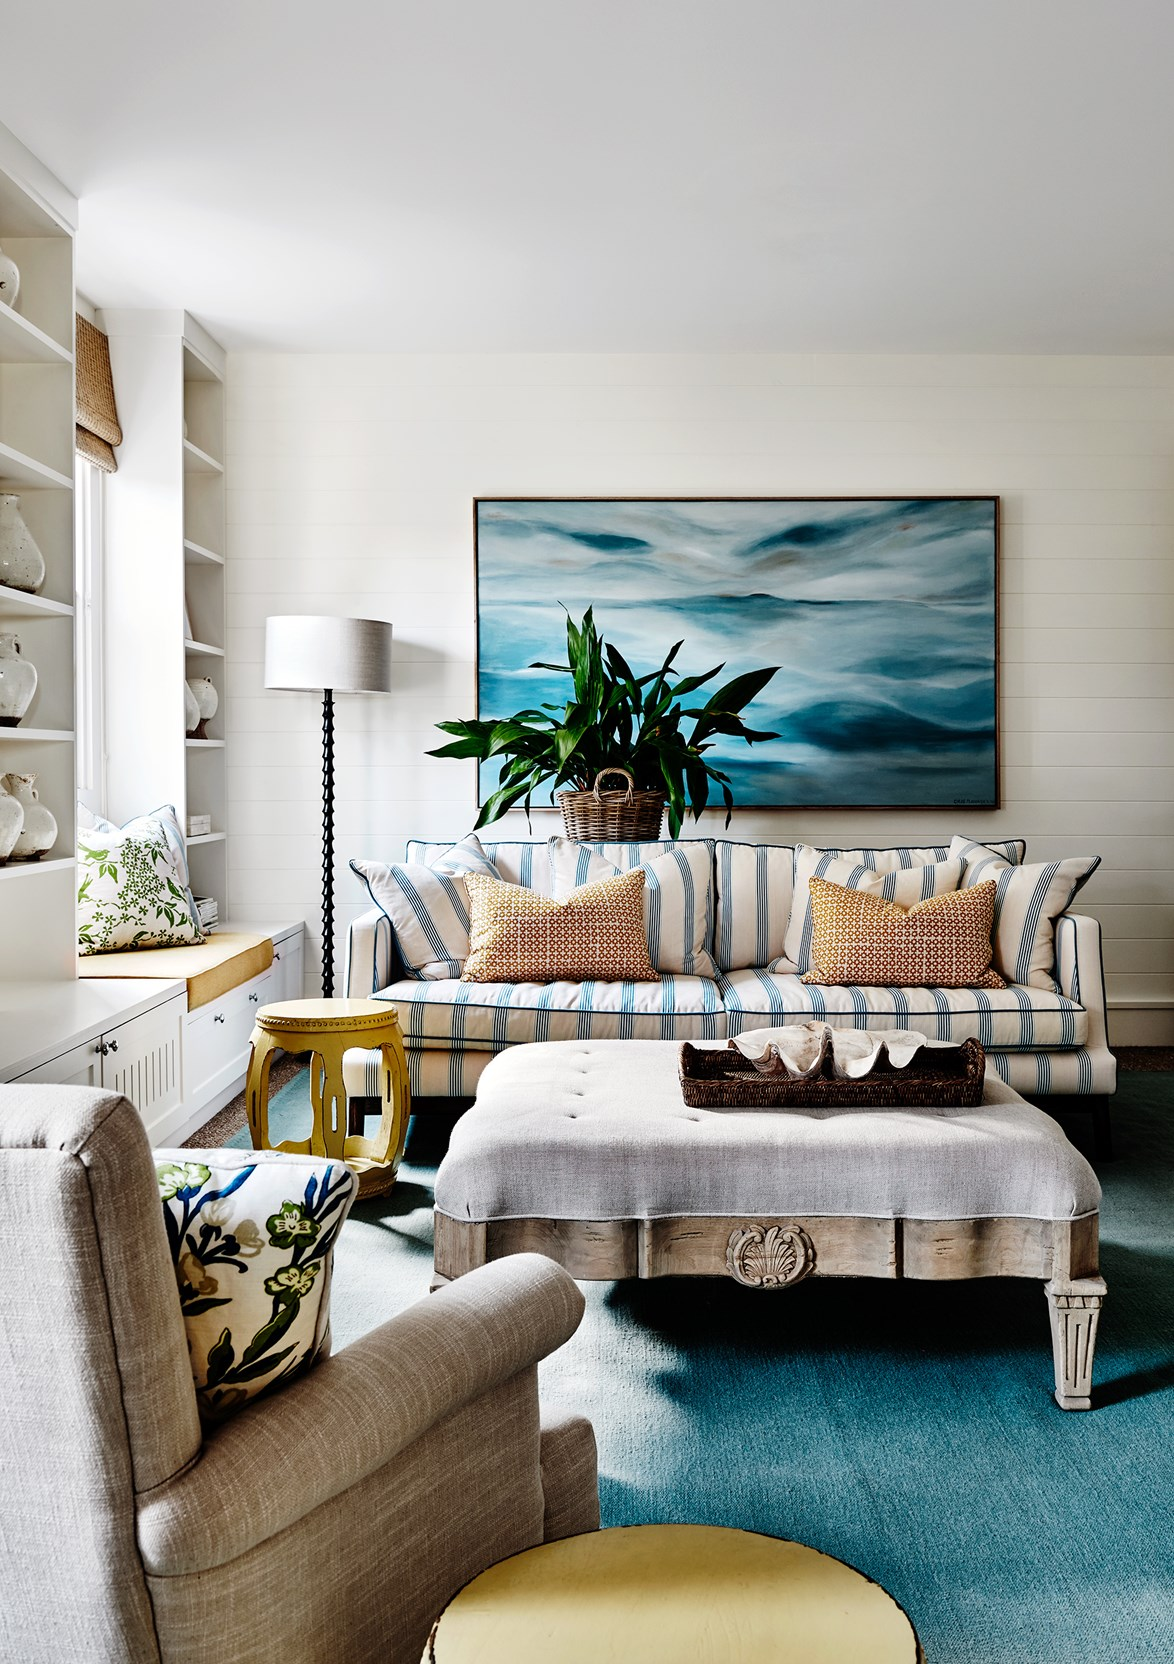 """Nothing says Hamptons style quite like blue and white pinstripes! This statement sofa in a [hamptons style weekender](https://www.homestolove.com.au/hamptons-style-mornington-peninsula-weekender-4558